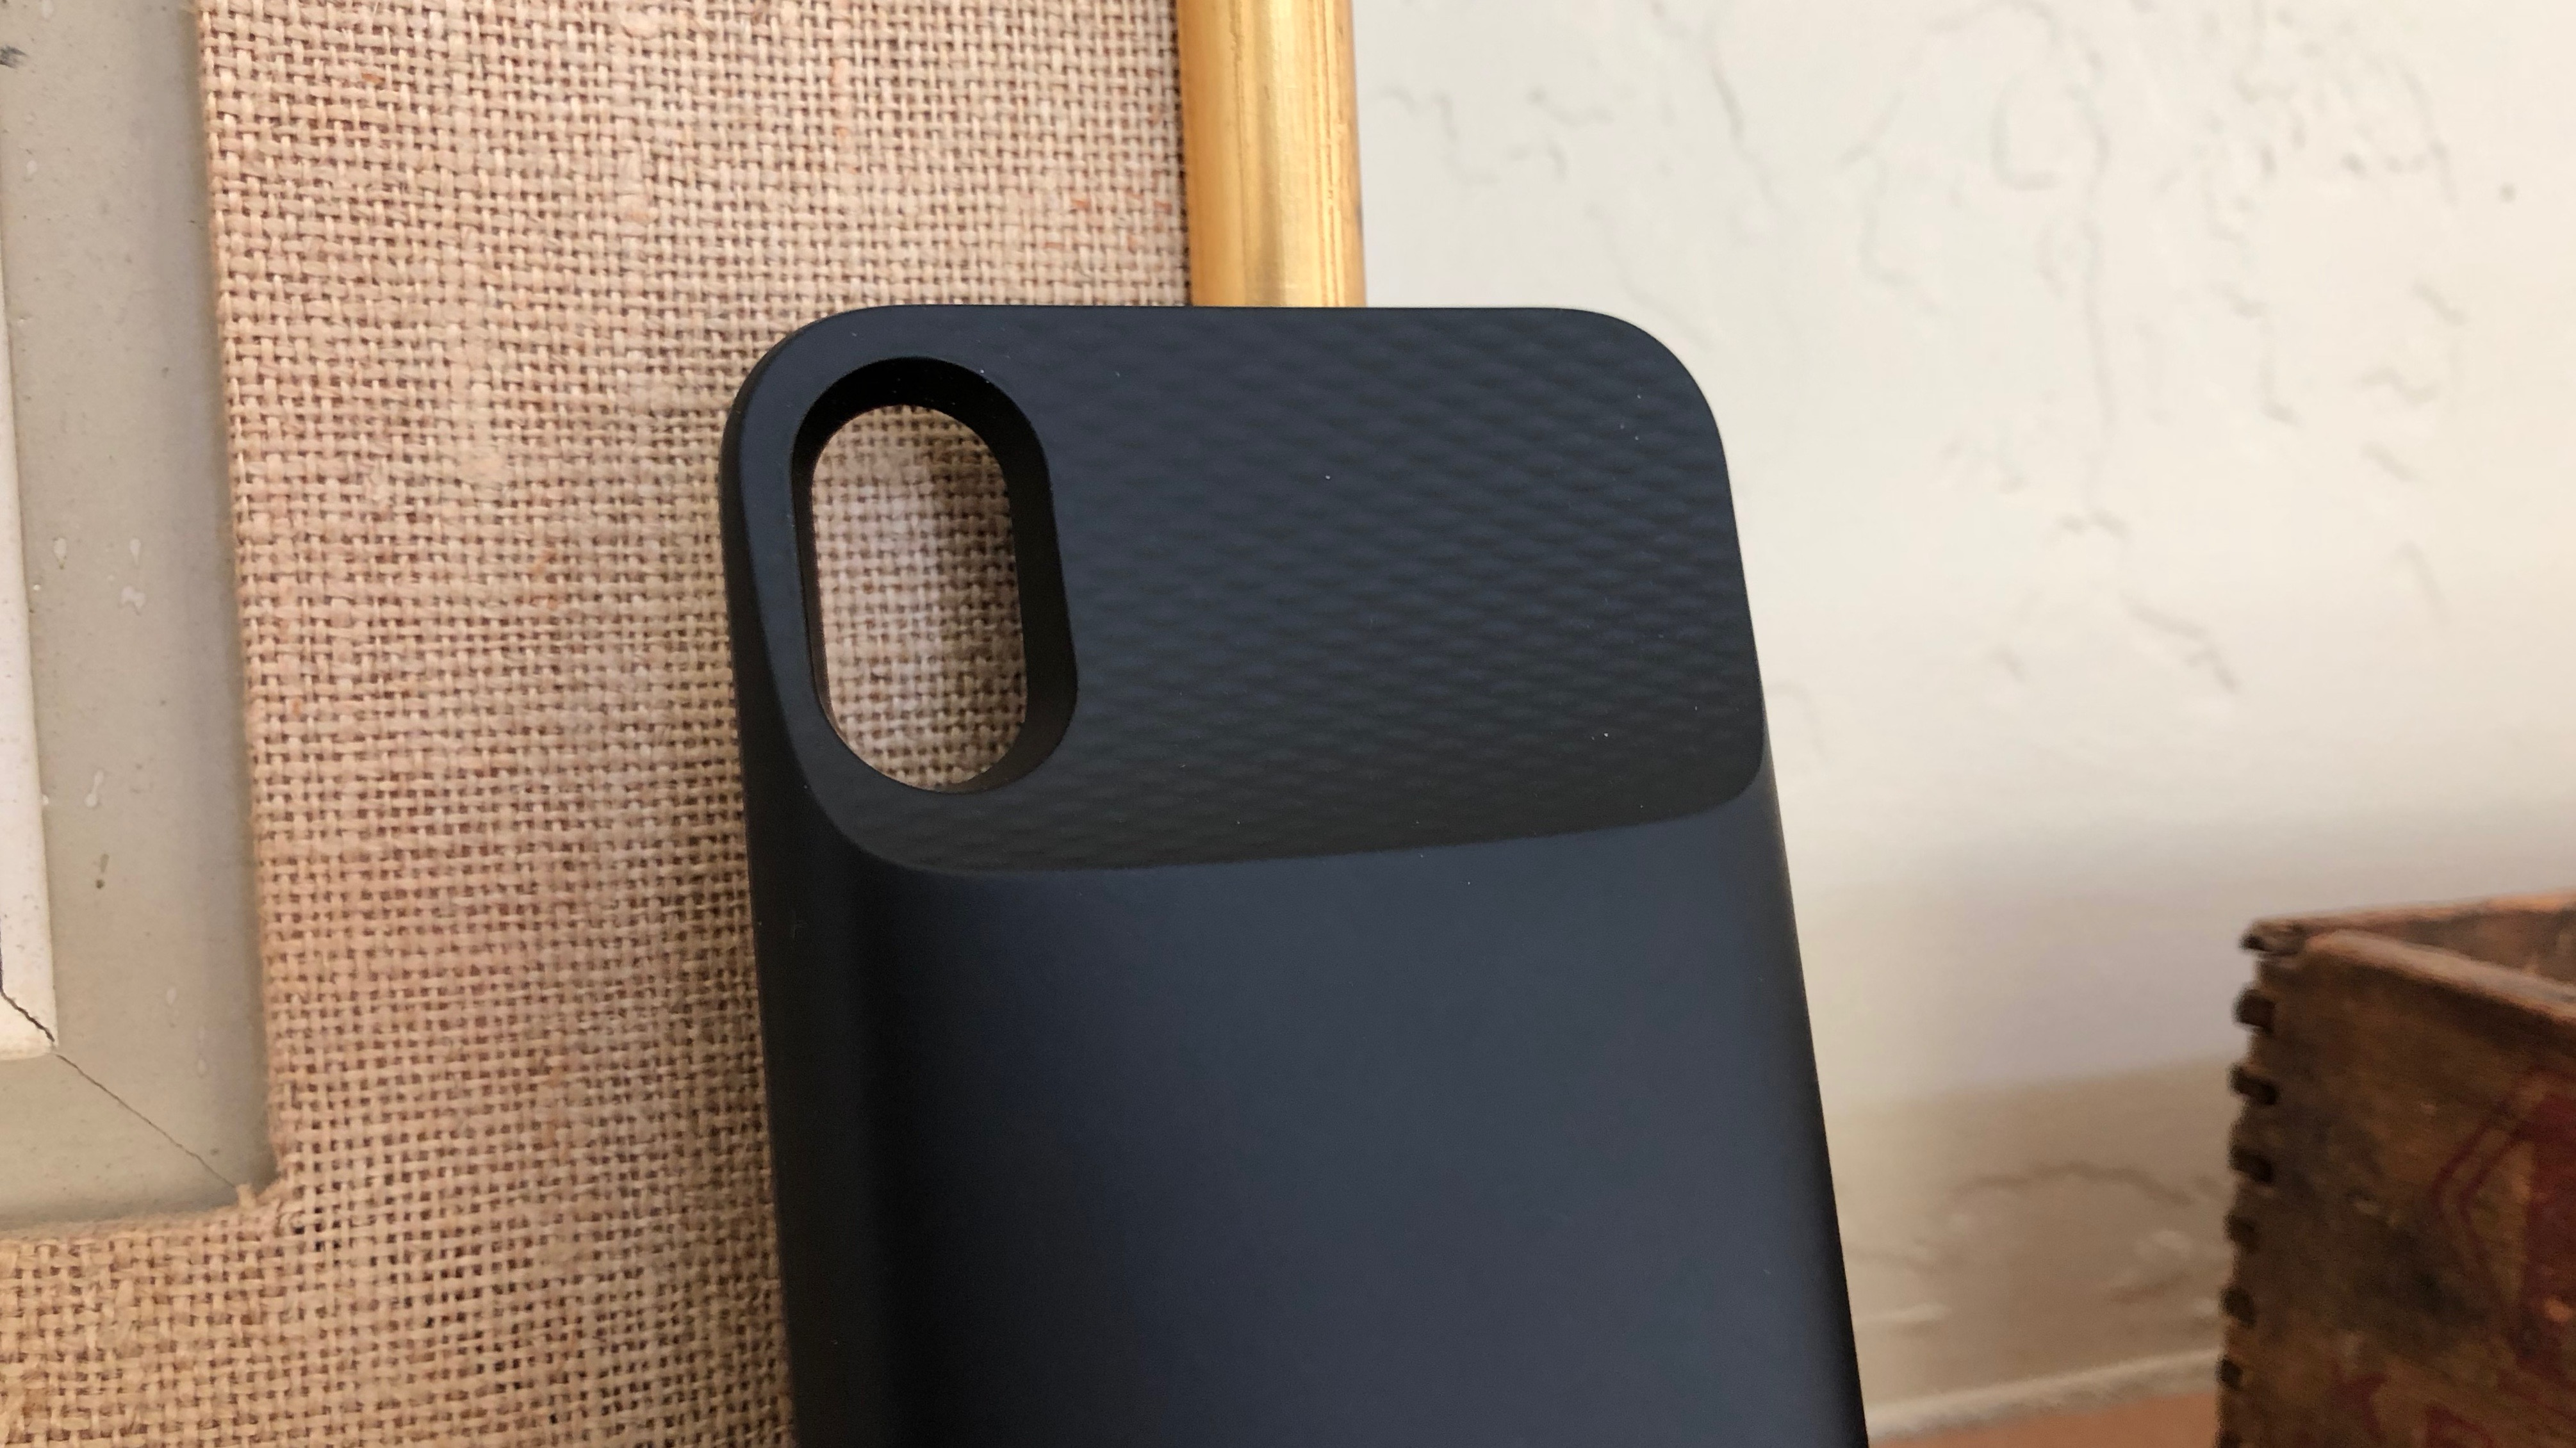 Review: Ugreen's magnetic wireless battery case for iPhone X and